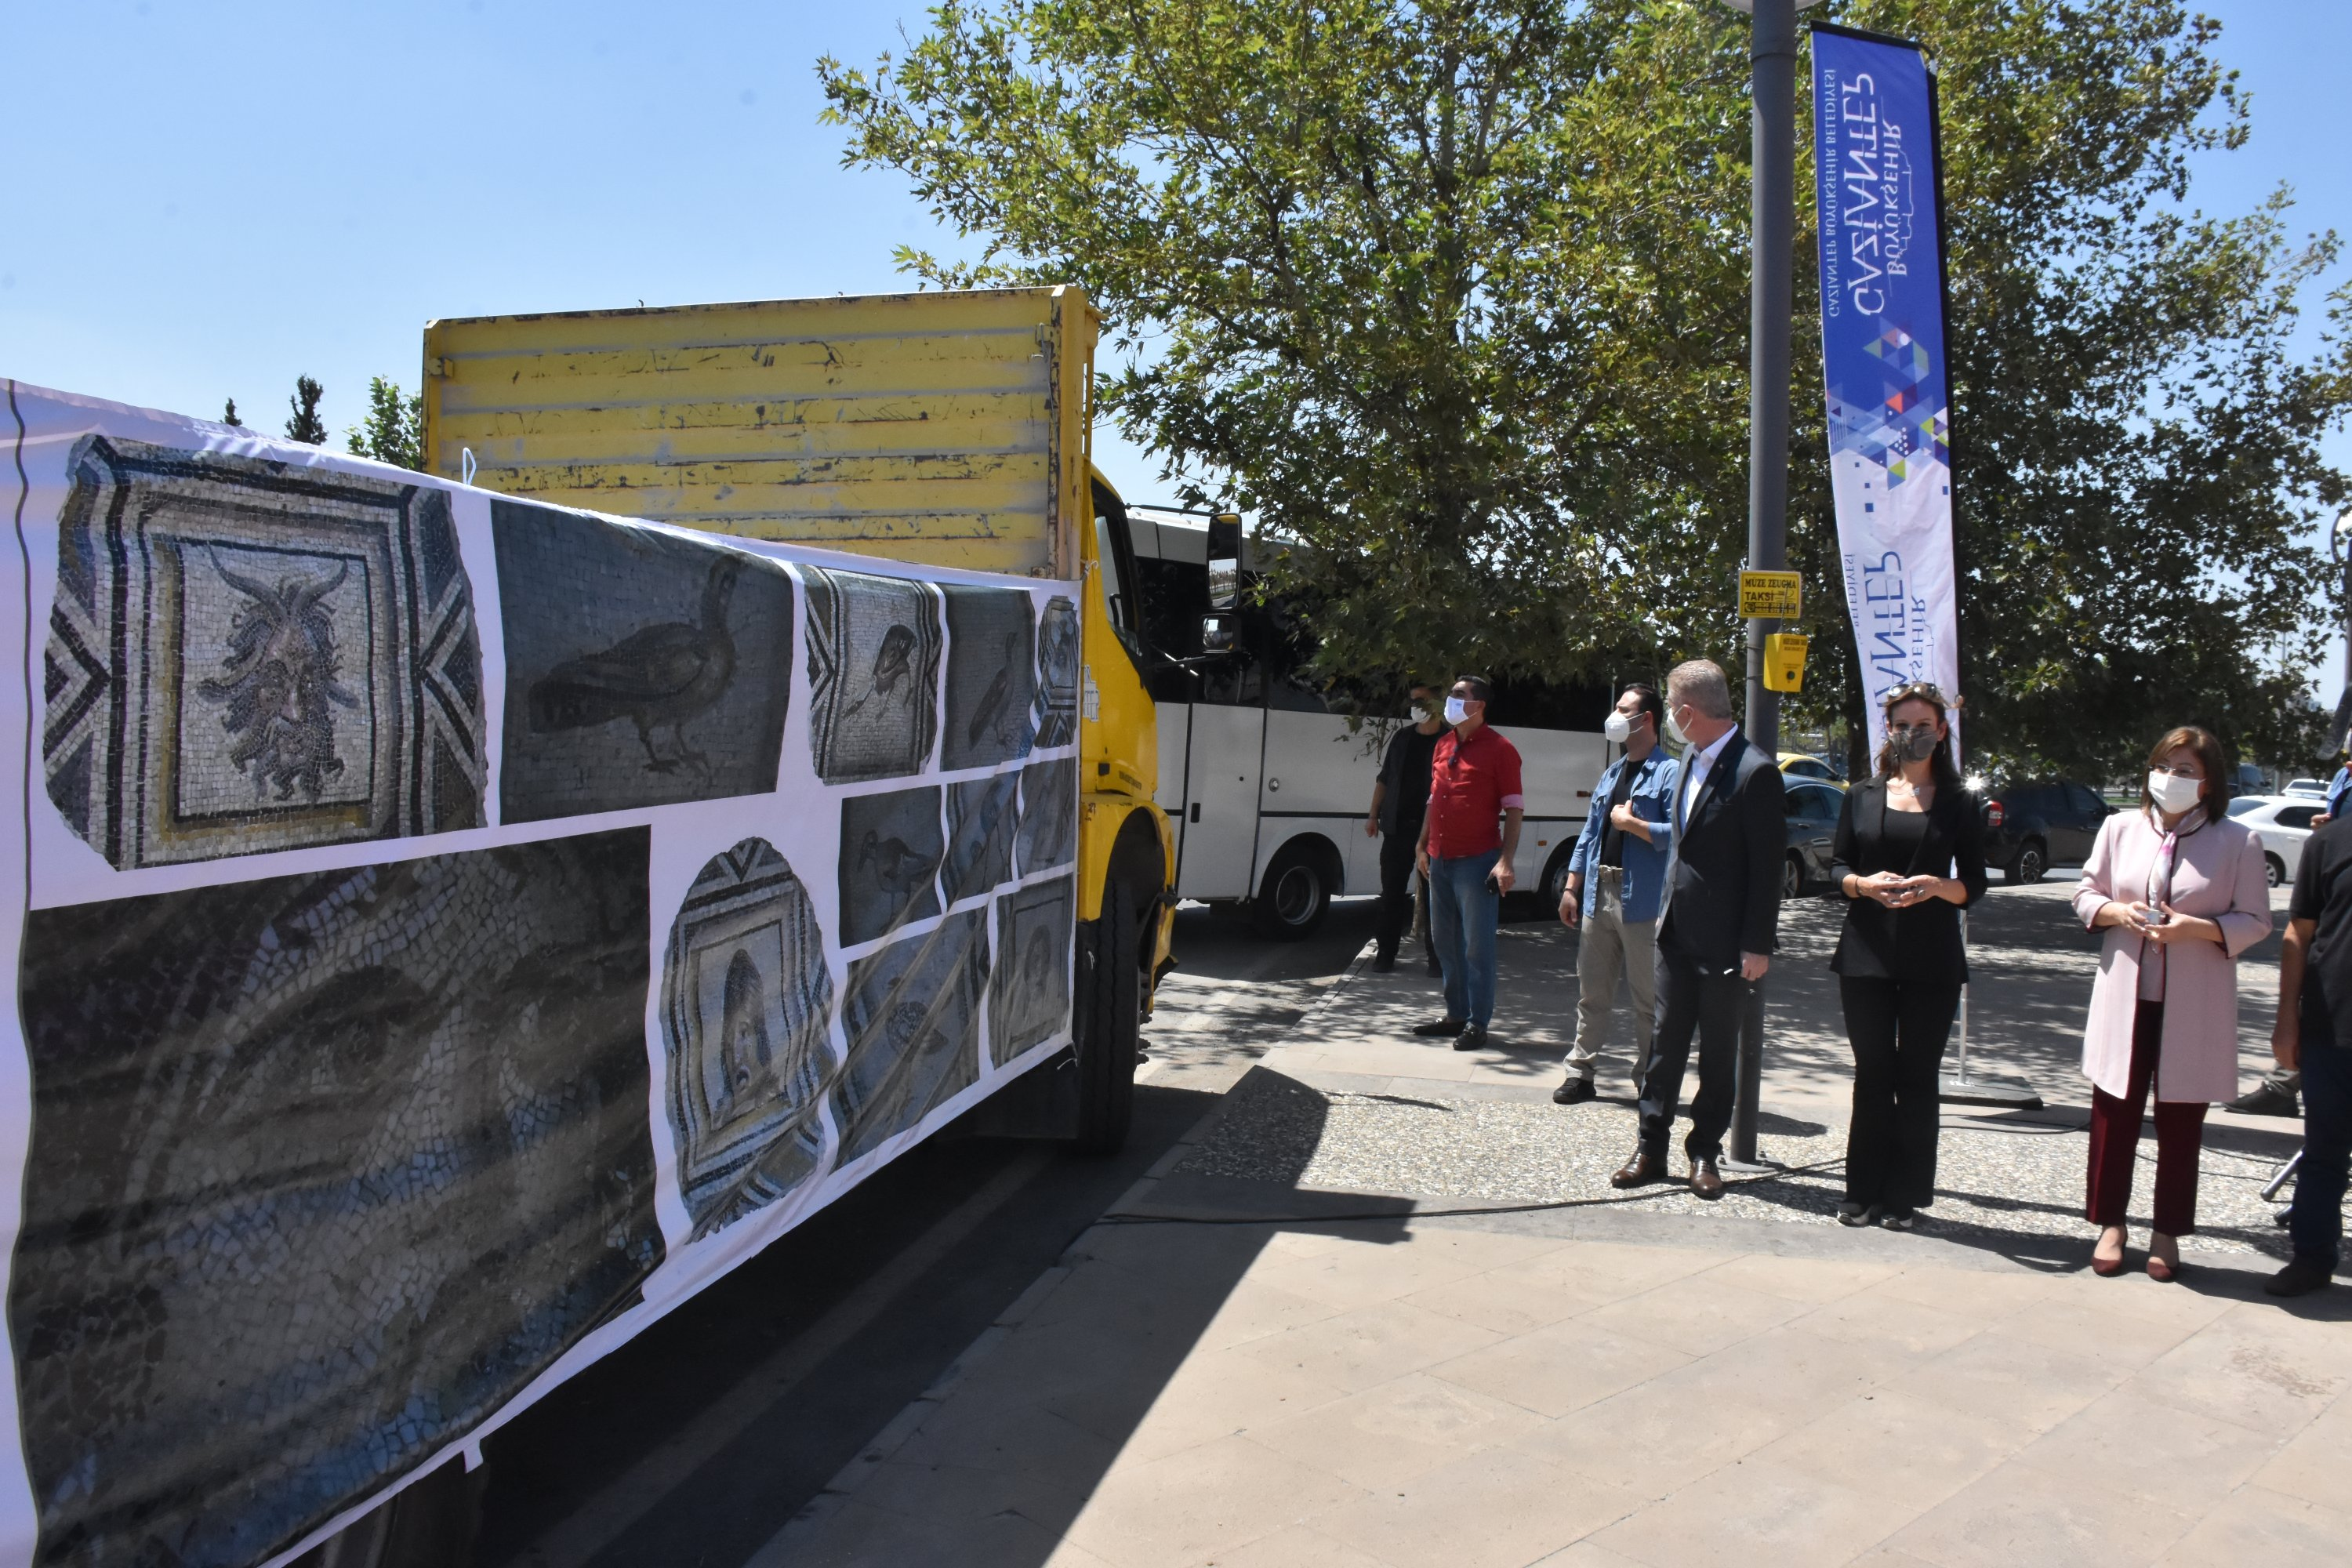 Replicas of the famous 'Gypsy Girl' mosaic are loaded onto a truck to be sent to the U.S., Gaziantep, southern Turkey, Aug. 21, 2021. (AA Photo)